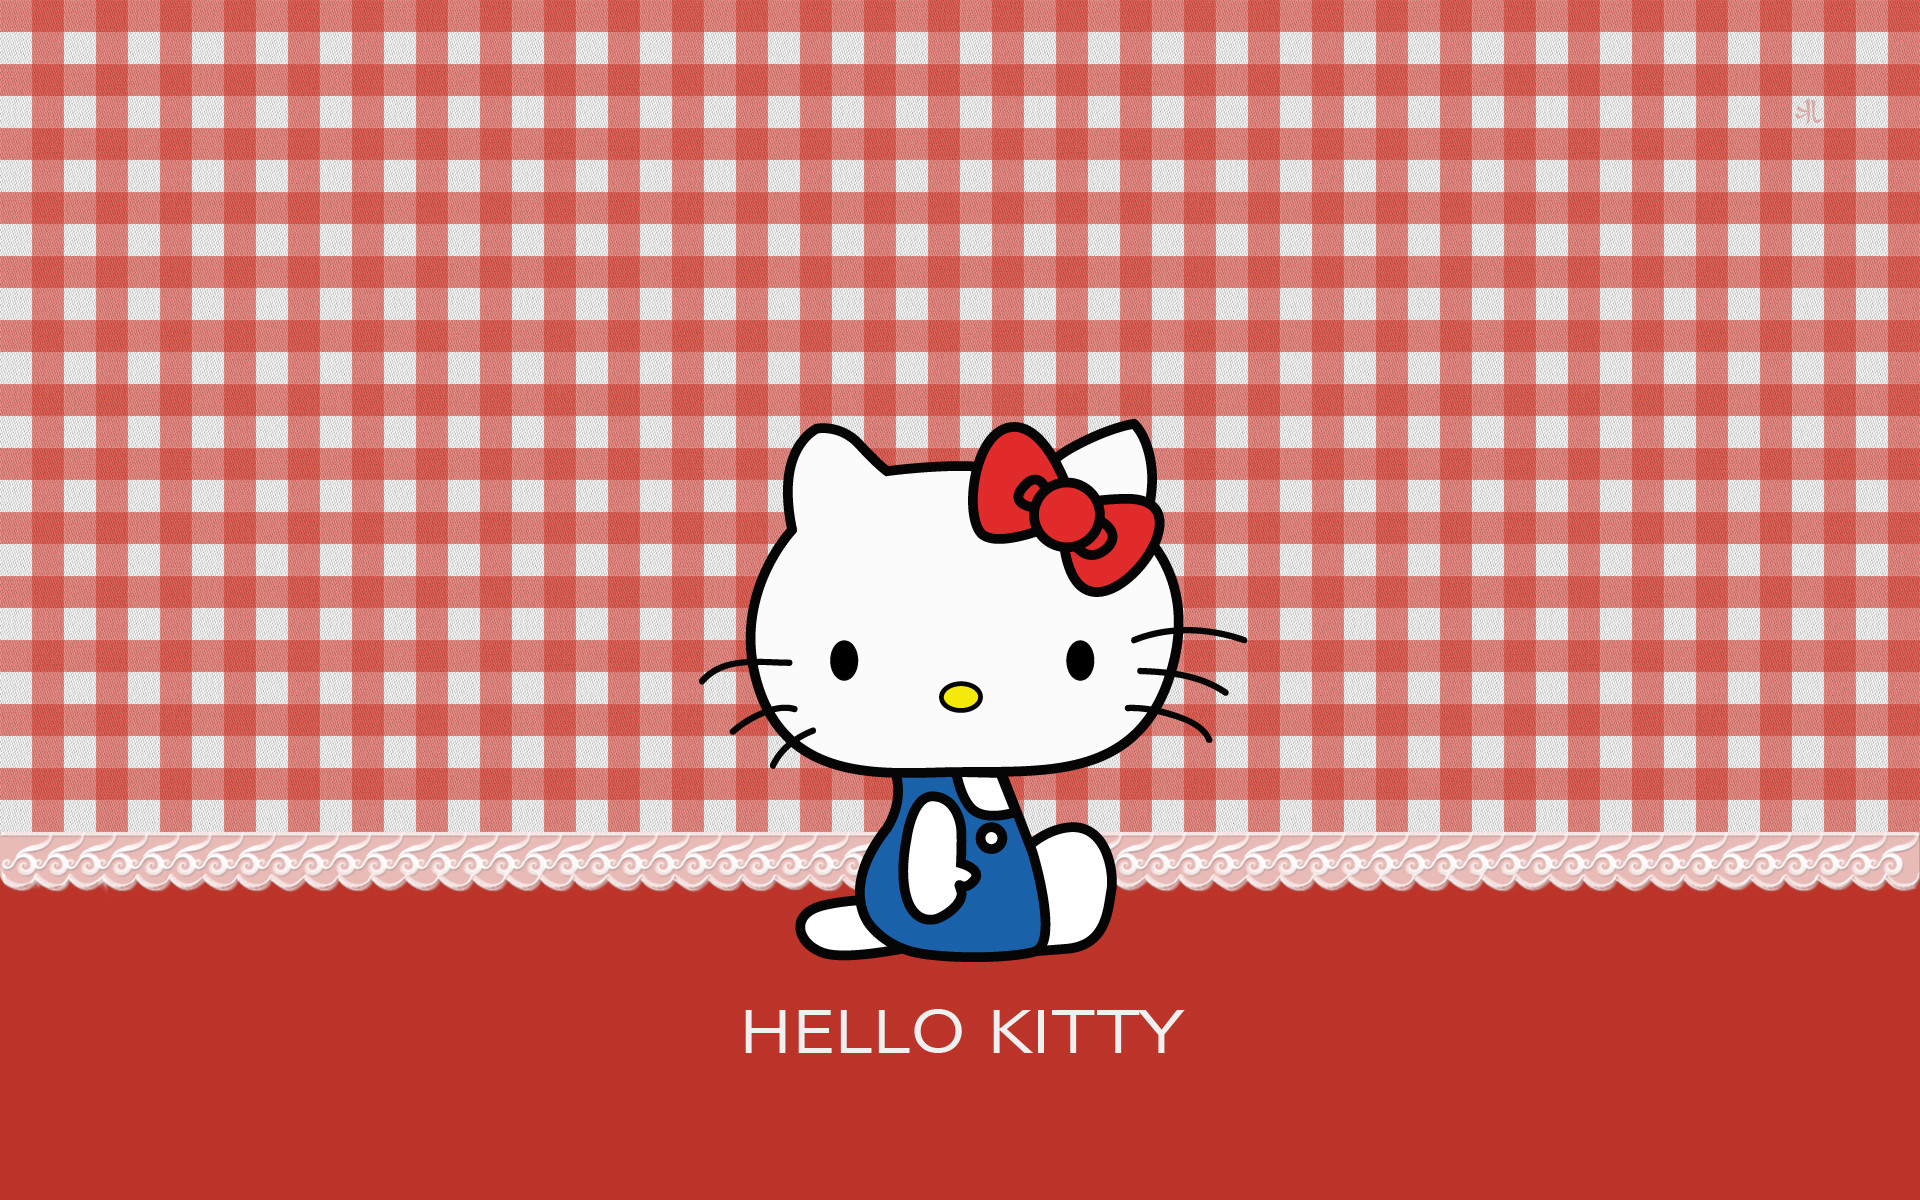 Amazing Wallpaper Hello Kitty Red - 806895-hello-kitty-red-wallpaper-1920x1200-for-4k-monitor  Pic_7683100.jpg